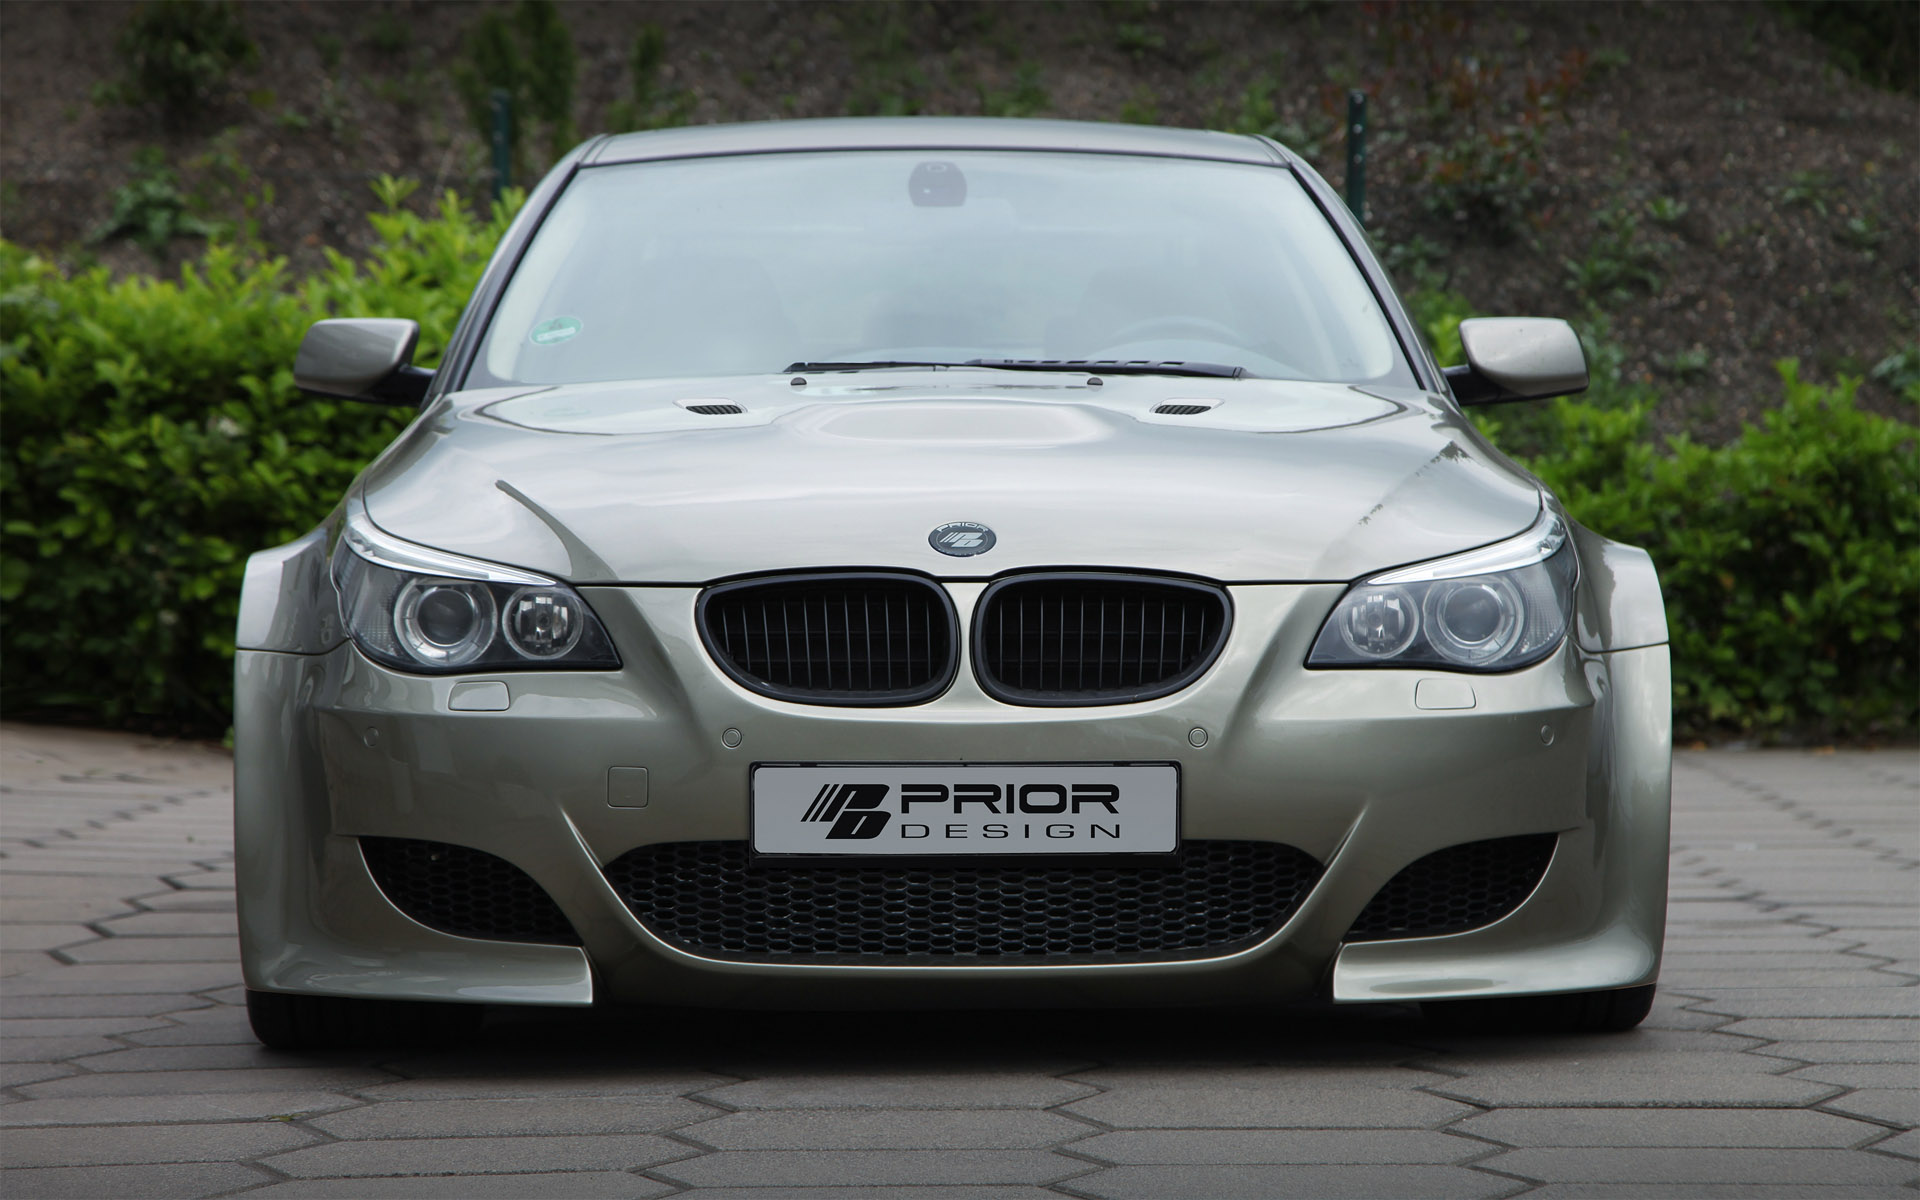 bmw 5 series e60 by prior design bmw photo 31335098 fanpop. Black Bedroom Furniture Sets. Home Design Ideas